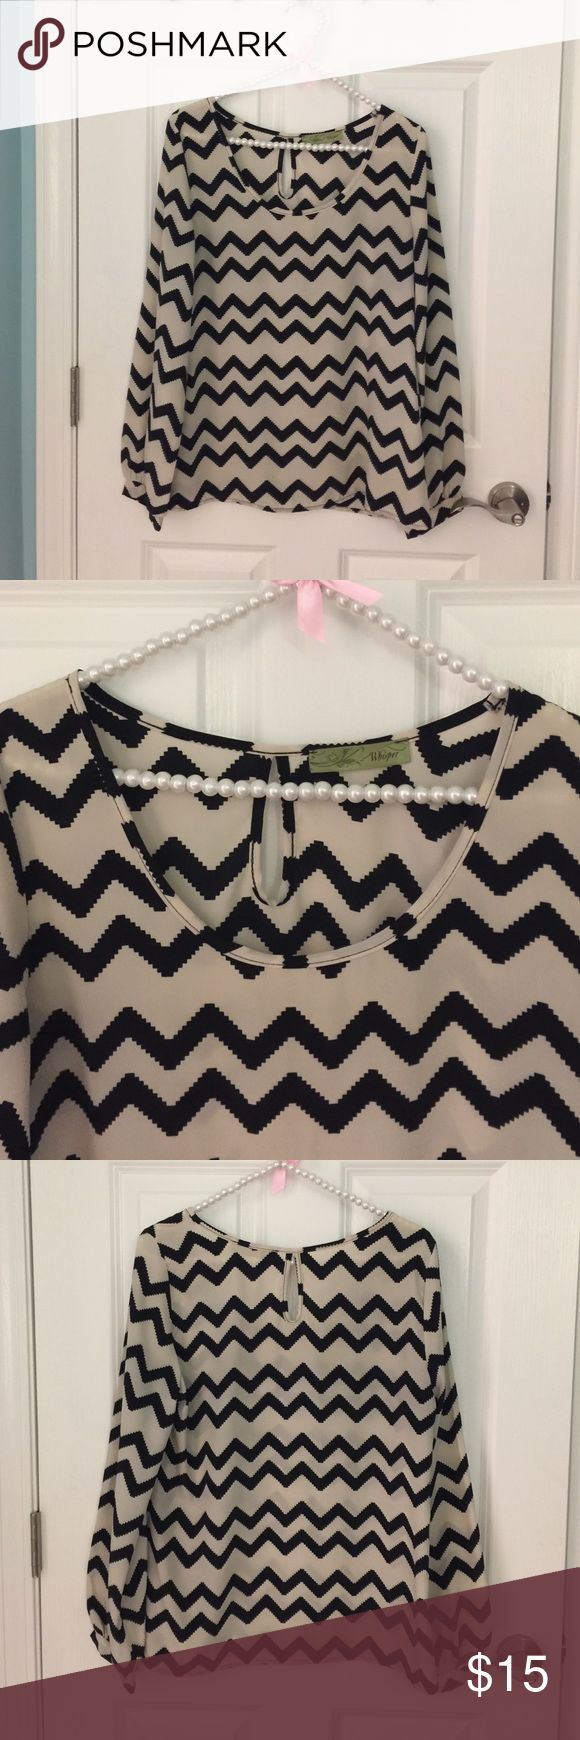 Size M chevron shirt No size tag but it fits like a medium. Only worn twice. Great condition. From Francesca's. Super cute!! Francesca's Collections Tops Blouses